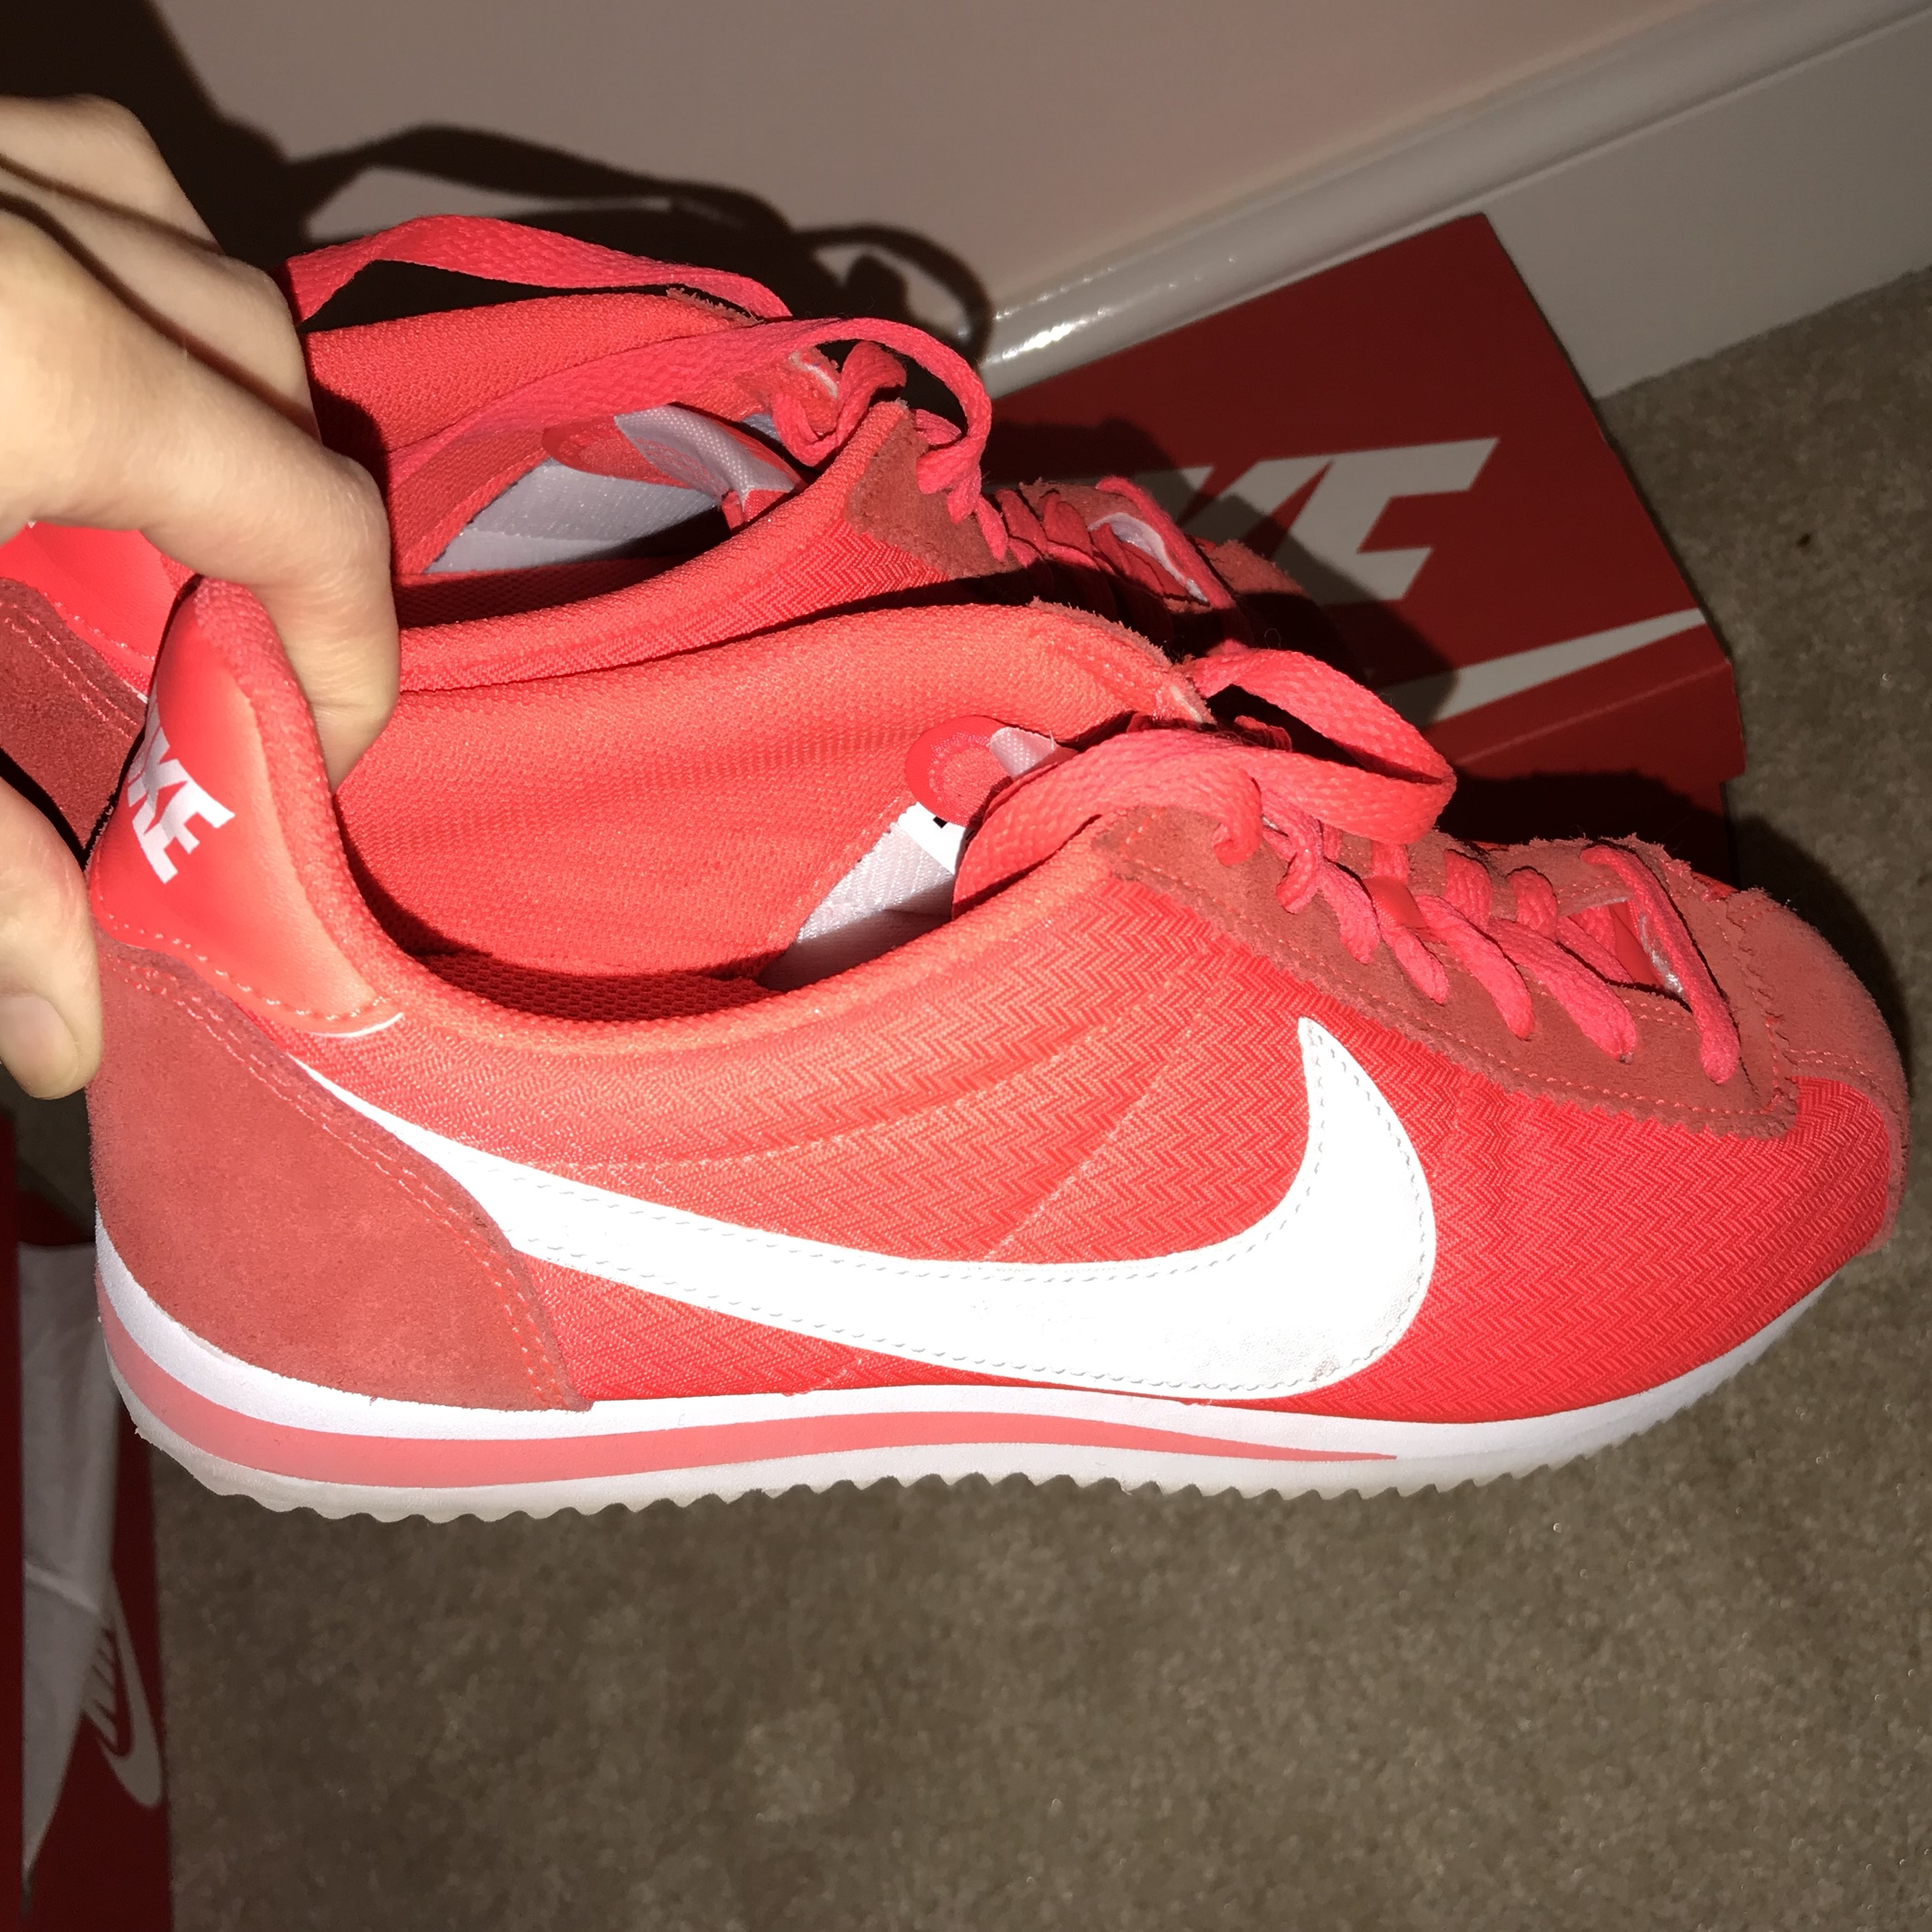 42397e0e0efd6 Orange and red Nike shoes. Only been worn a few times / for - Depop